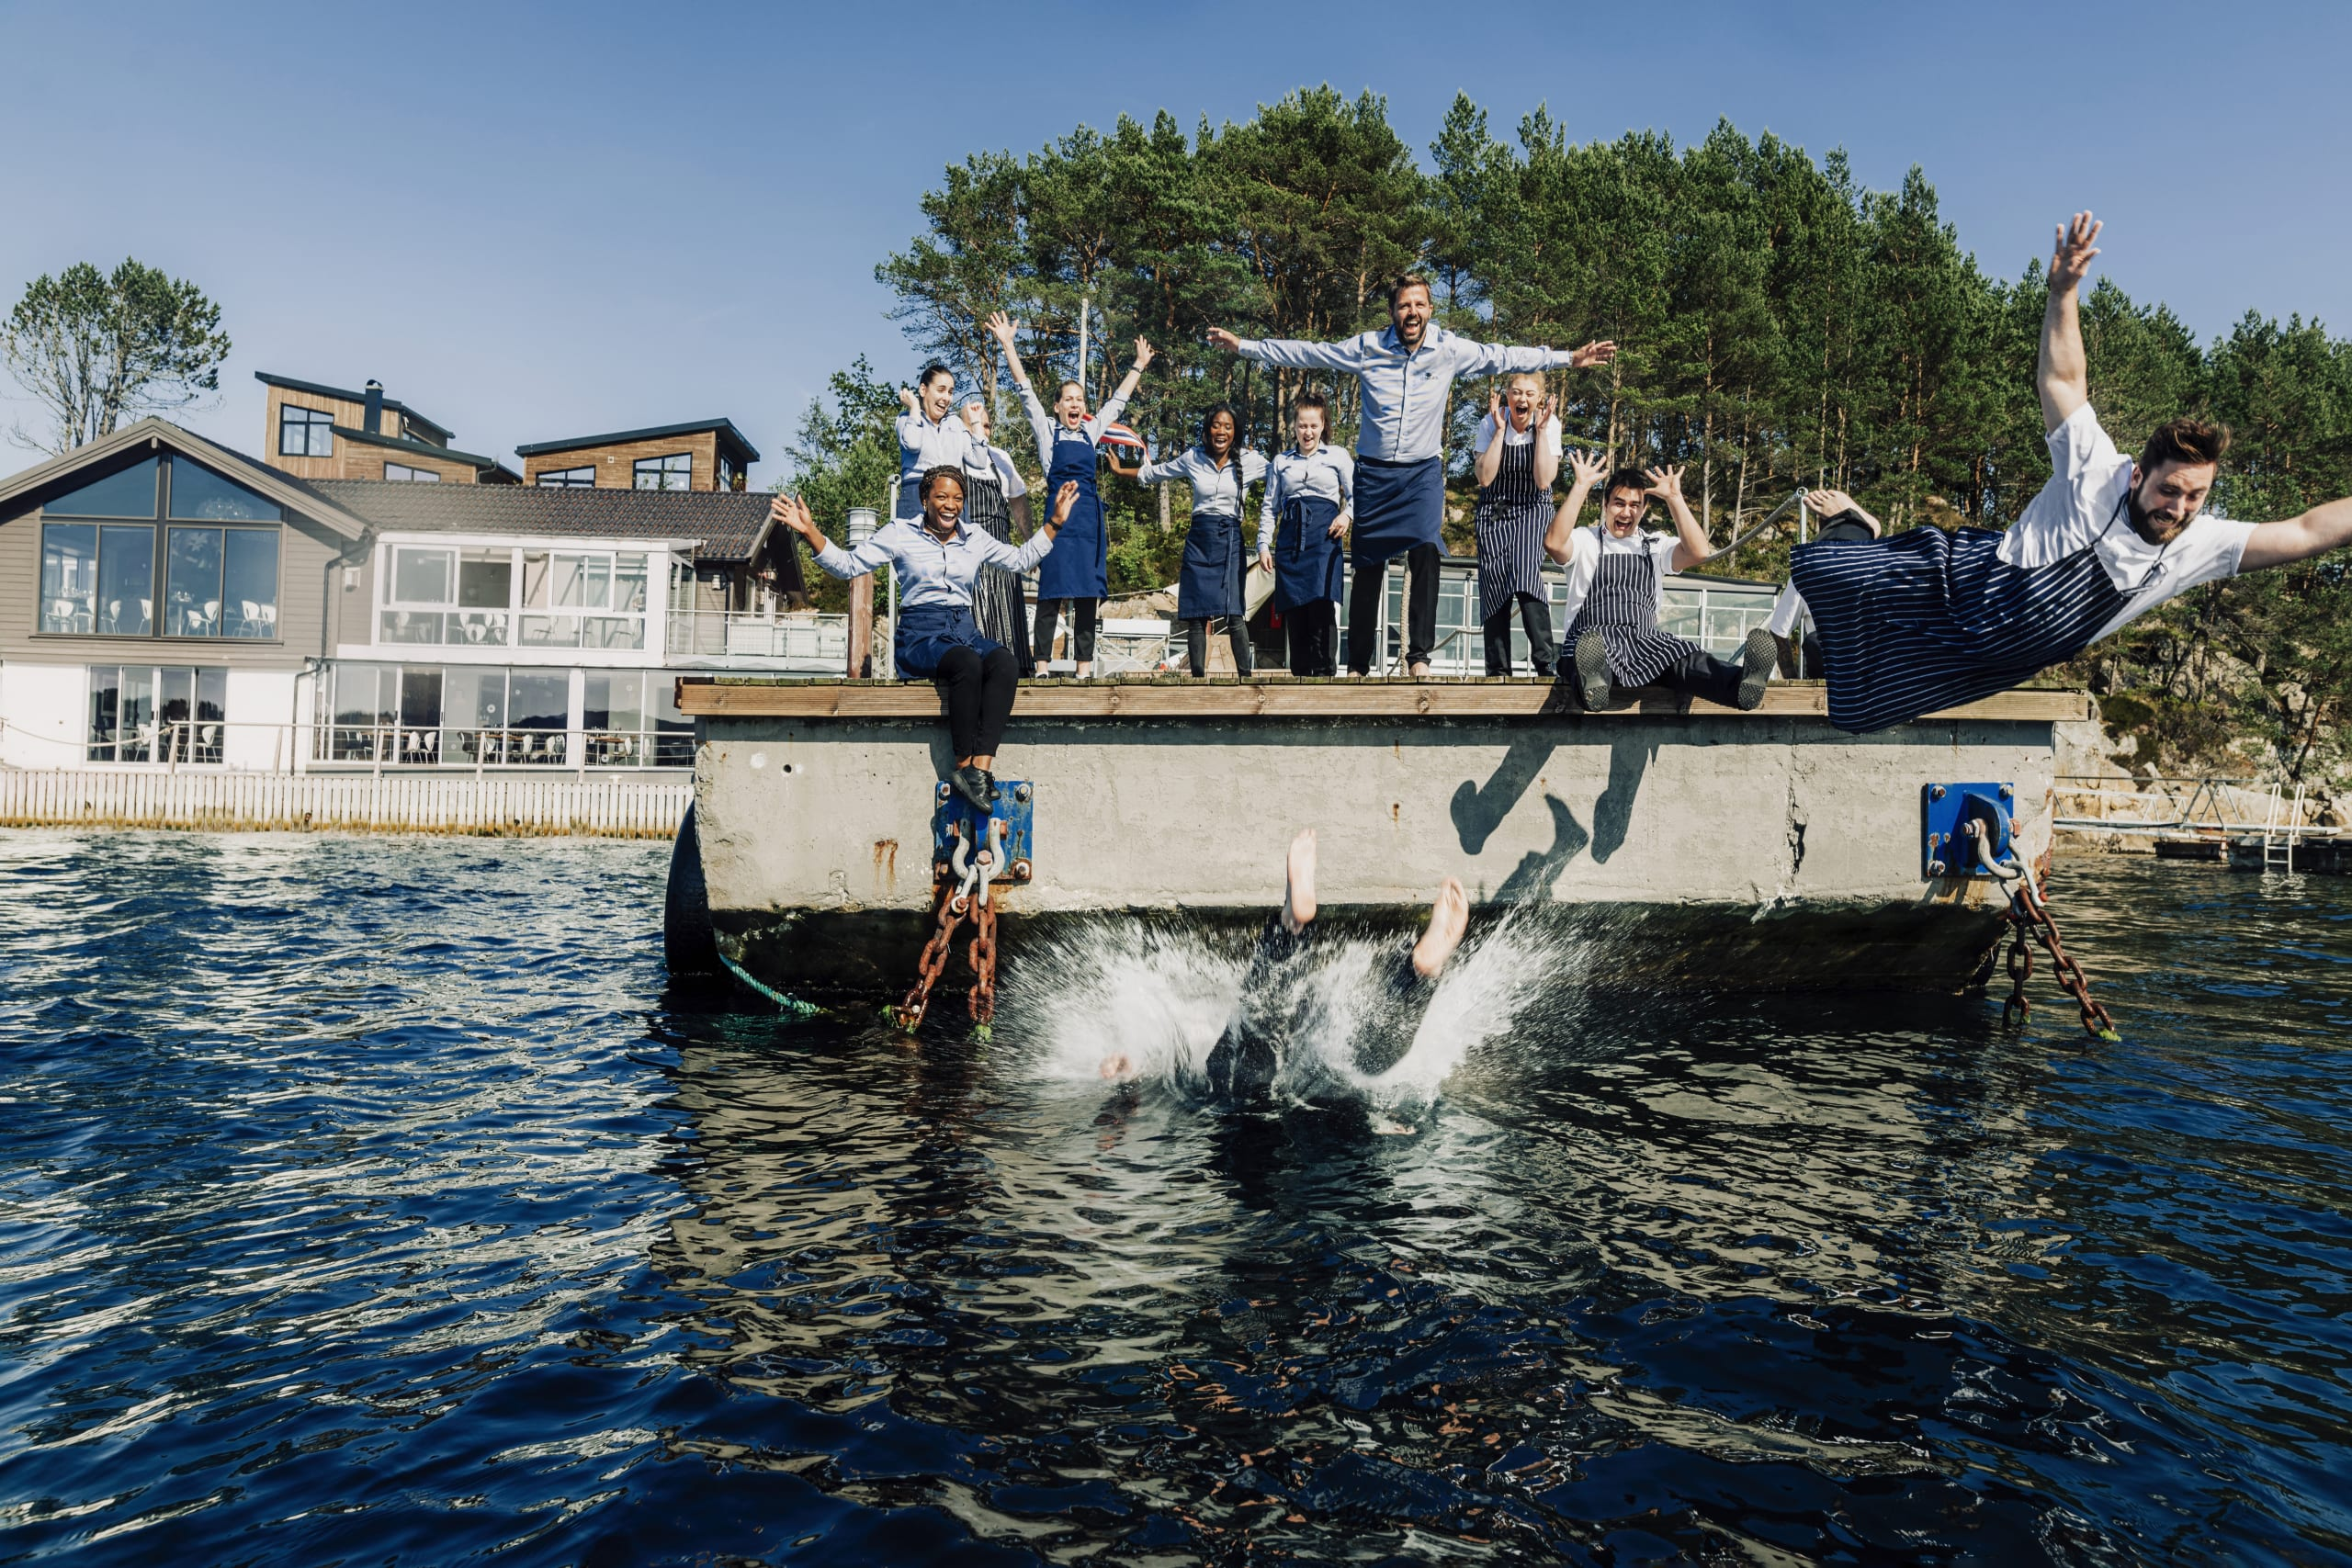 Chefs and crew jumping into the sea